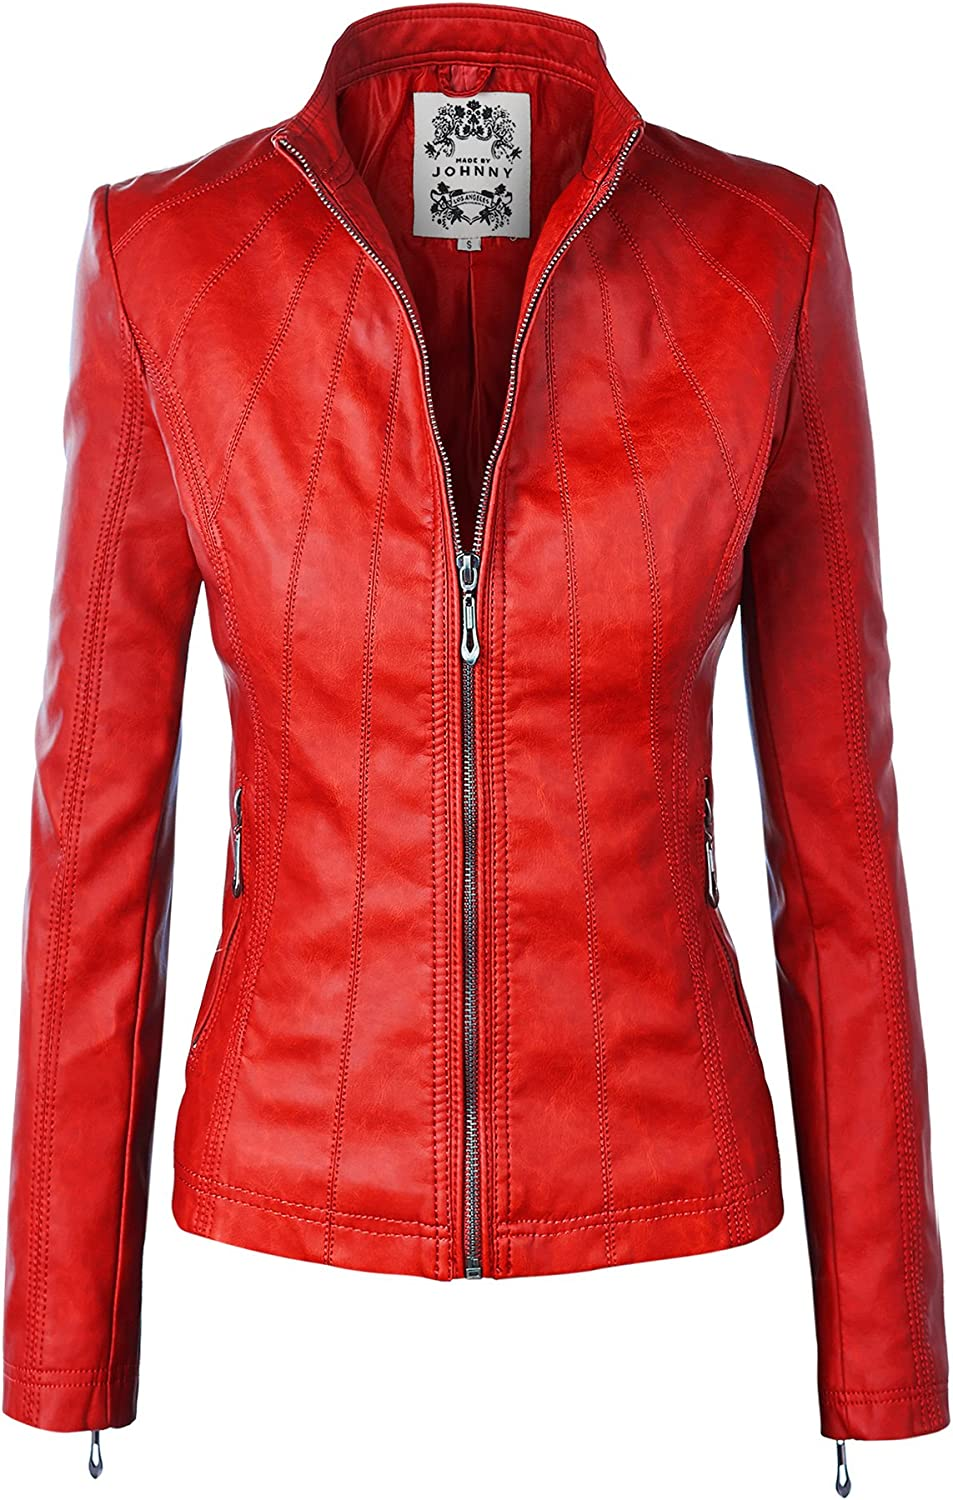 Inexpensive Made By Johnny MBJ Dealing full price reduction Womens Faux Biker Up Moto Zip Jacket Leather